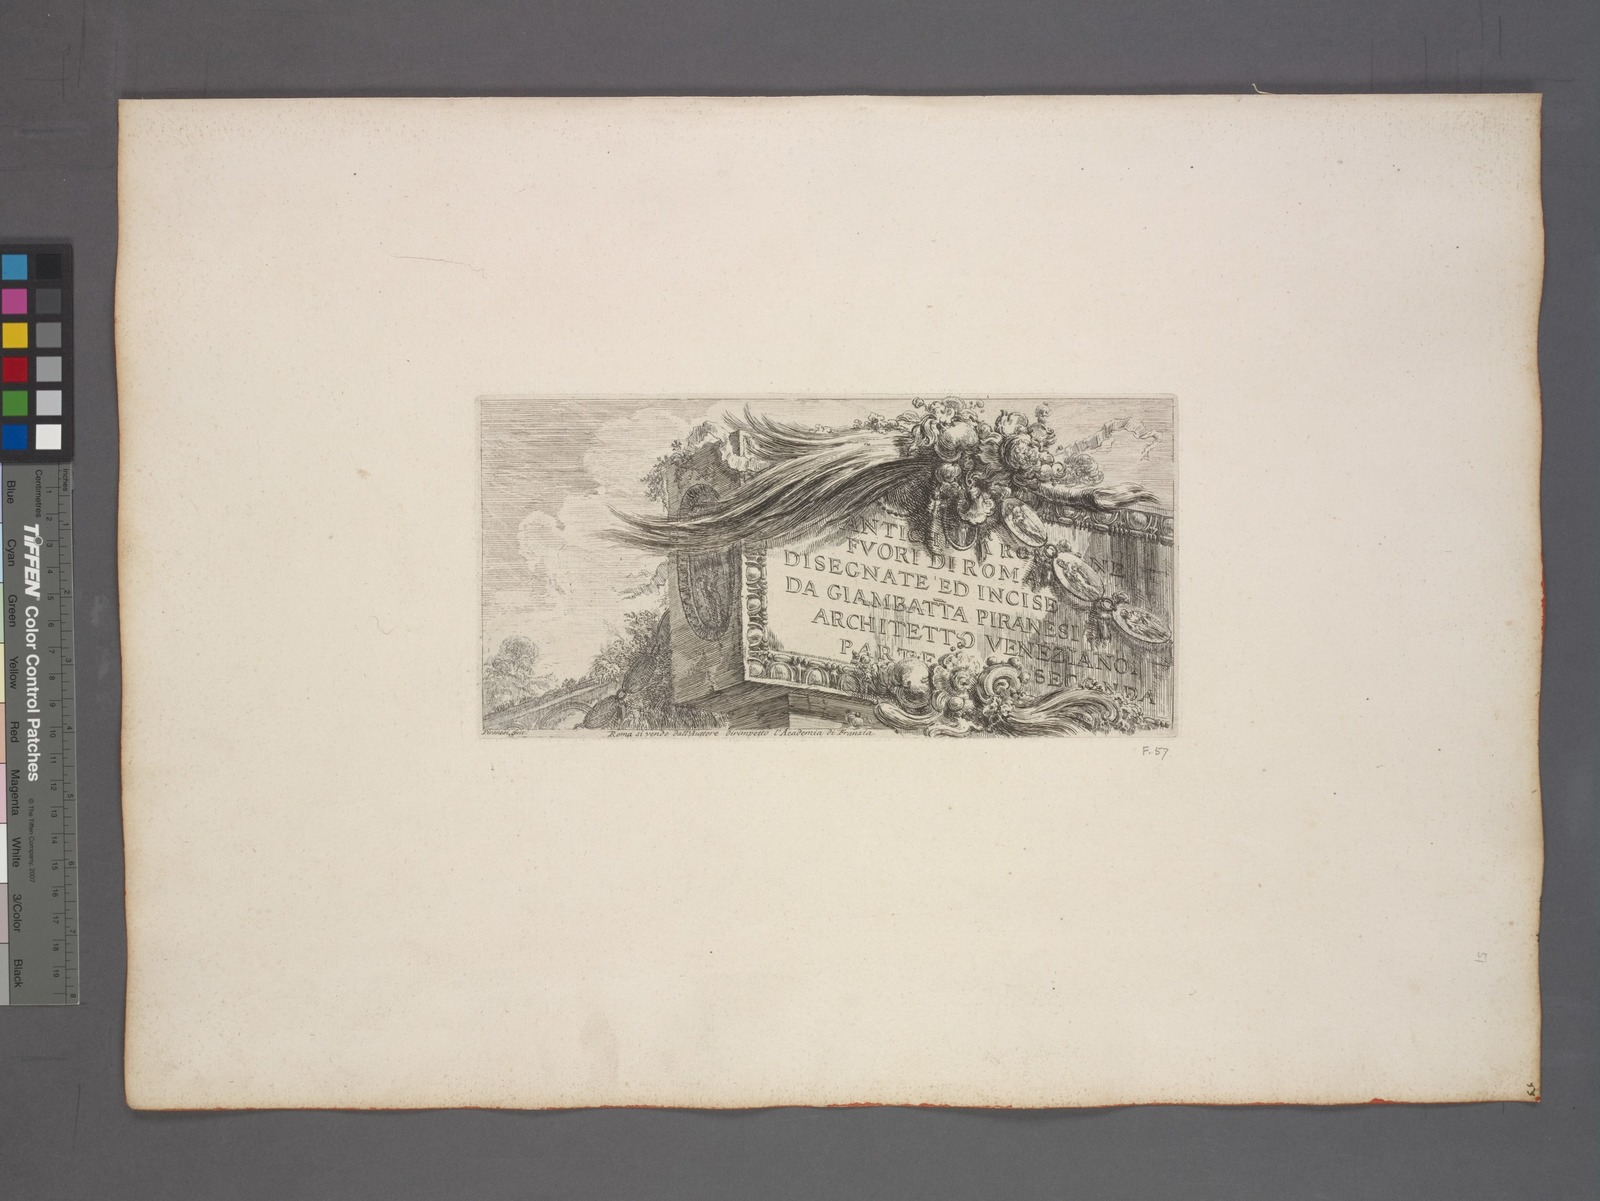 [Second] title page: Roman Antiquities outside Rome. . .